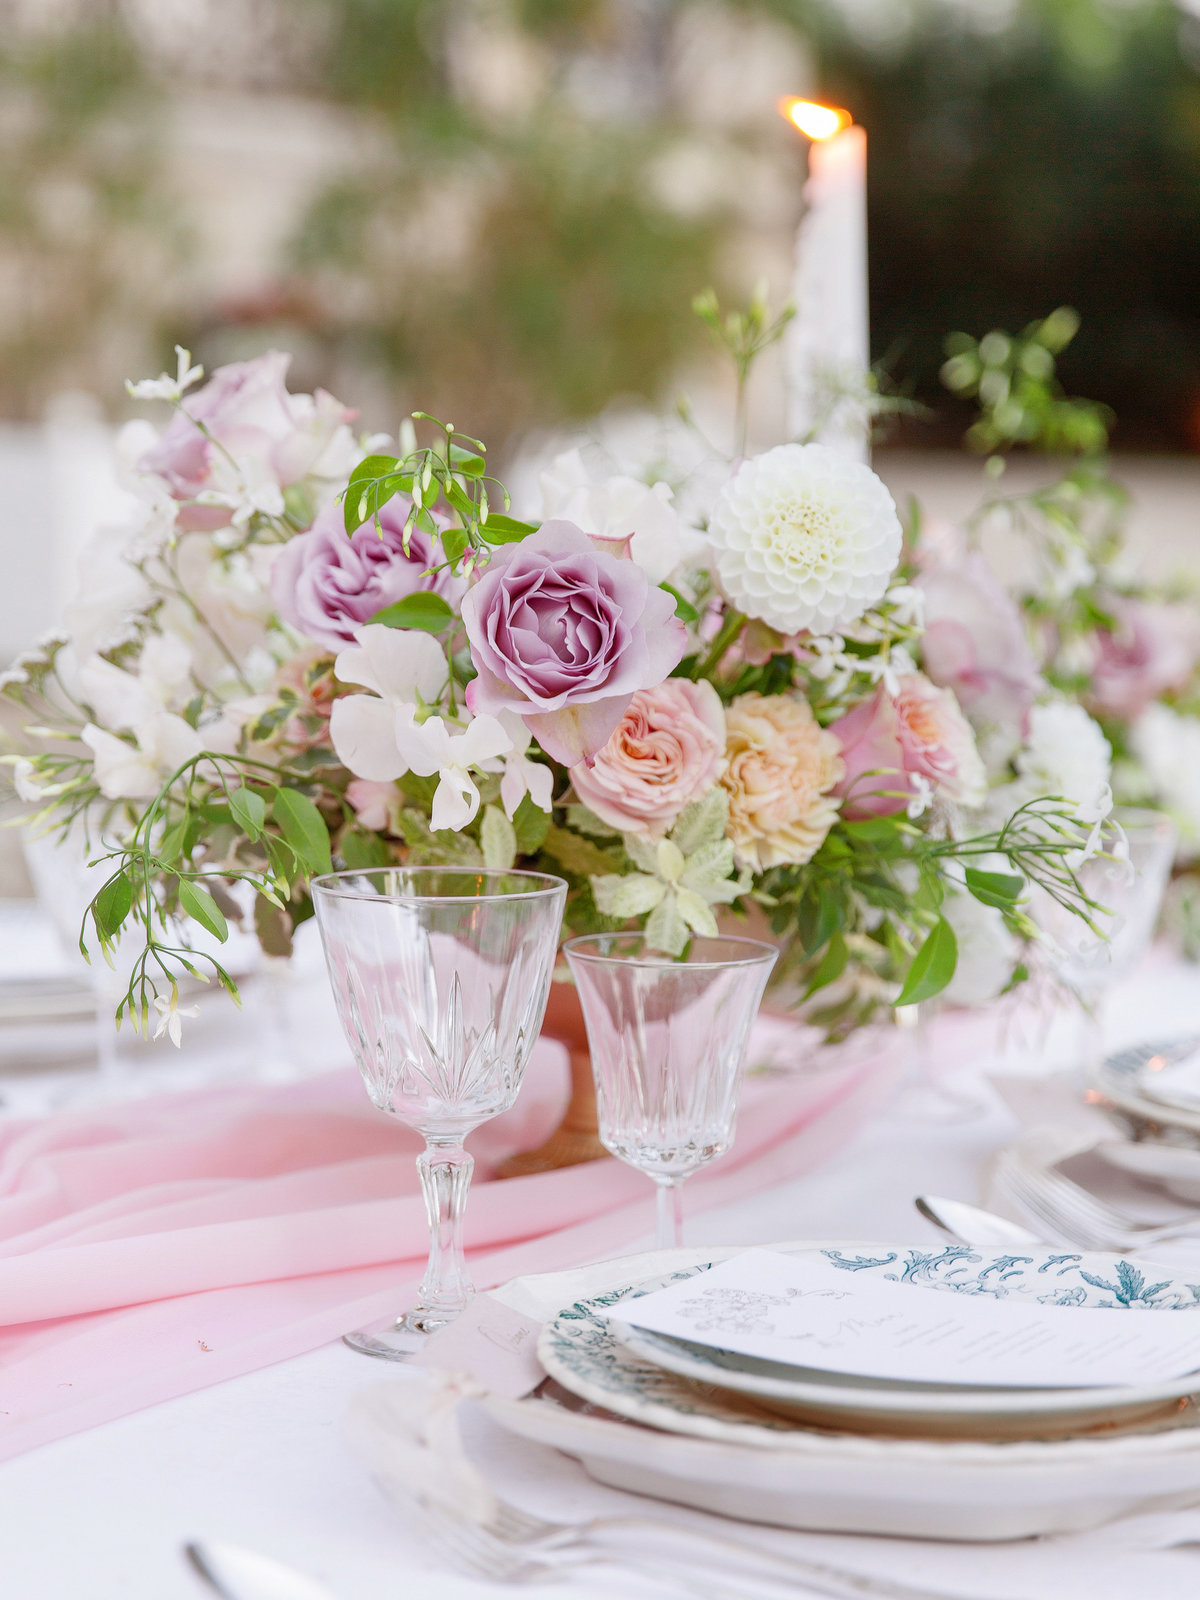 Luxurious french chateau wedding amelia soegijono0057